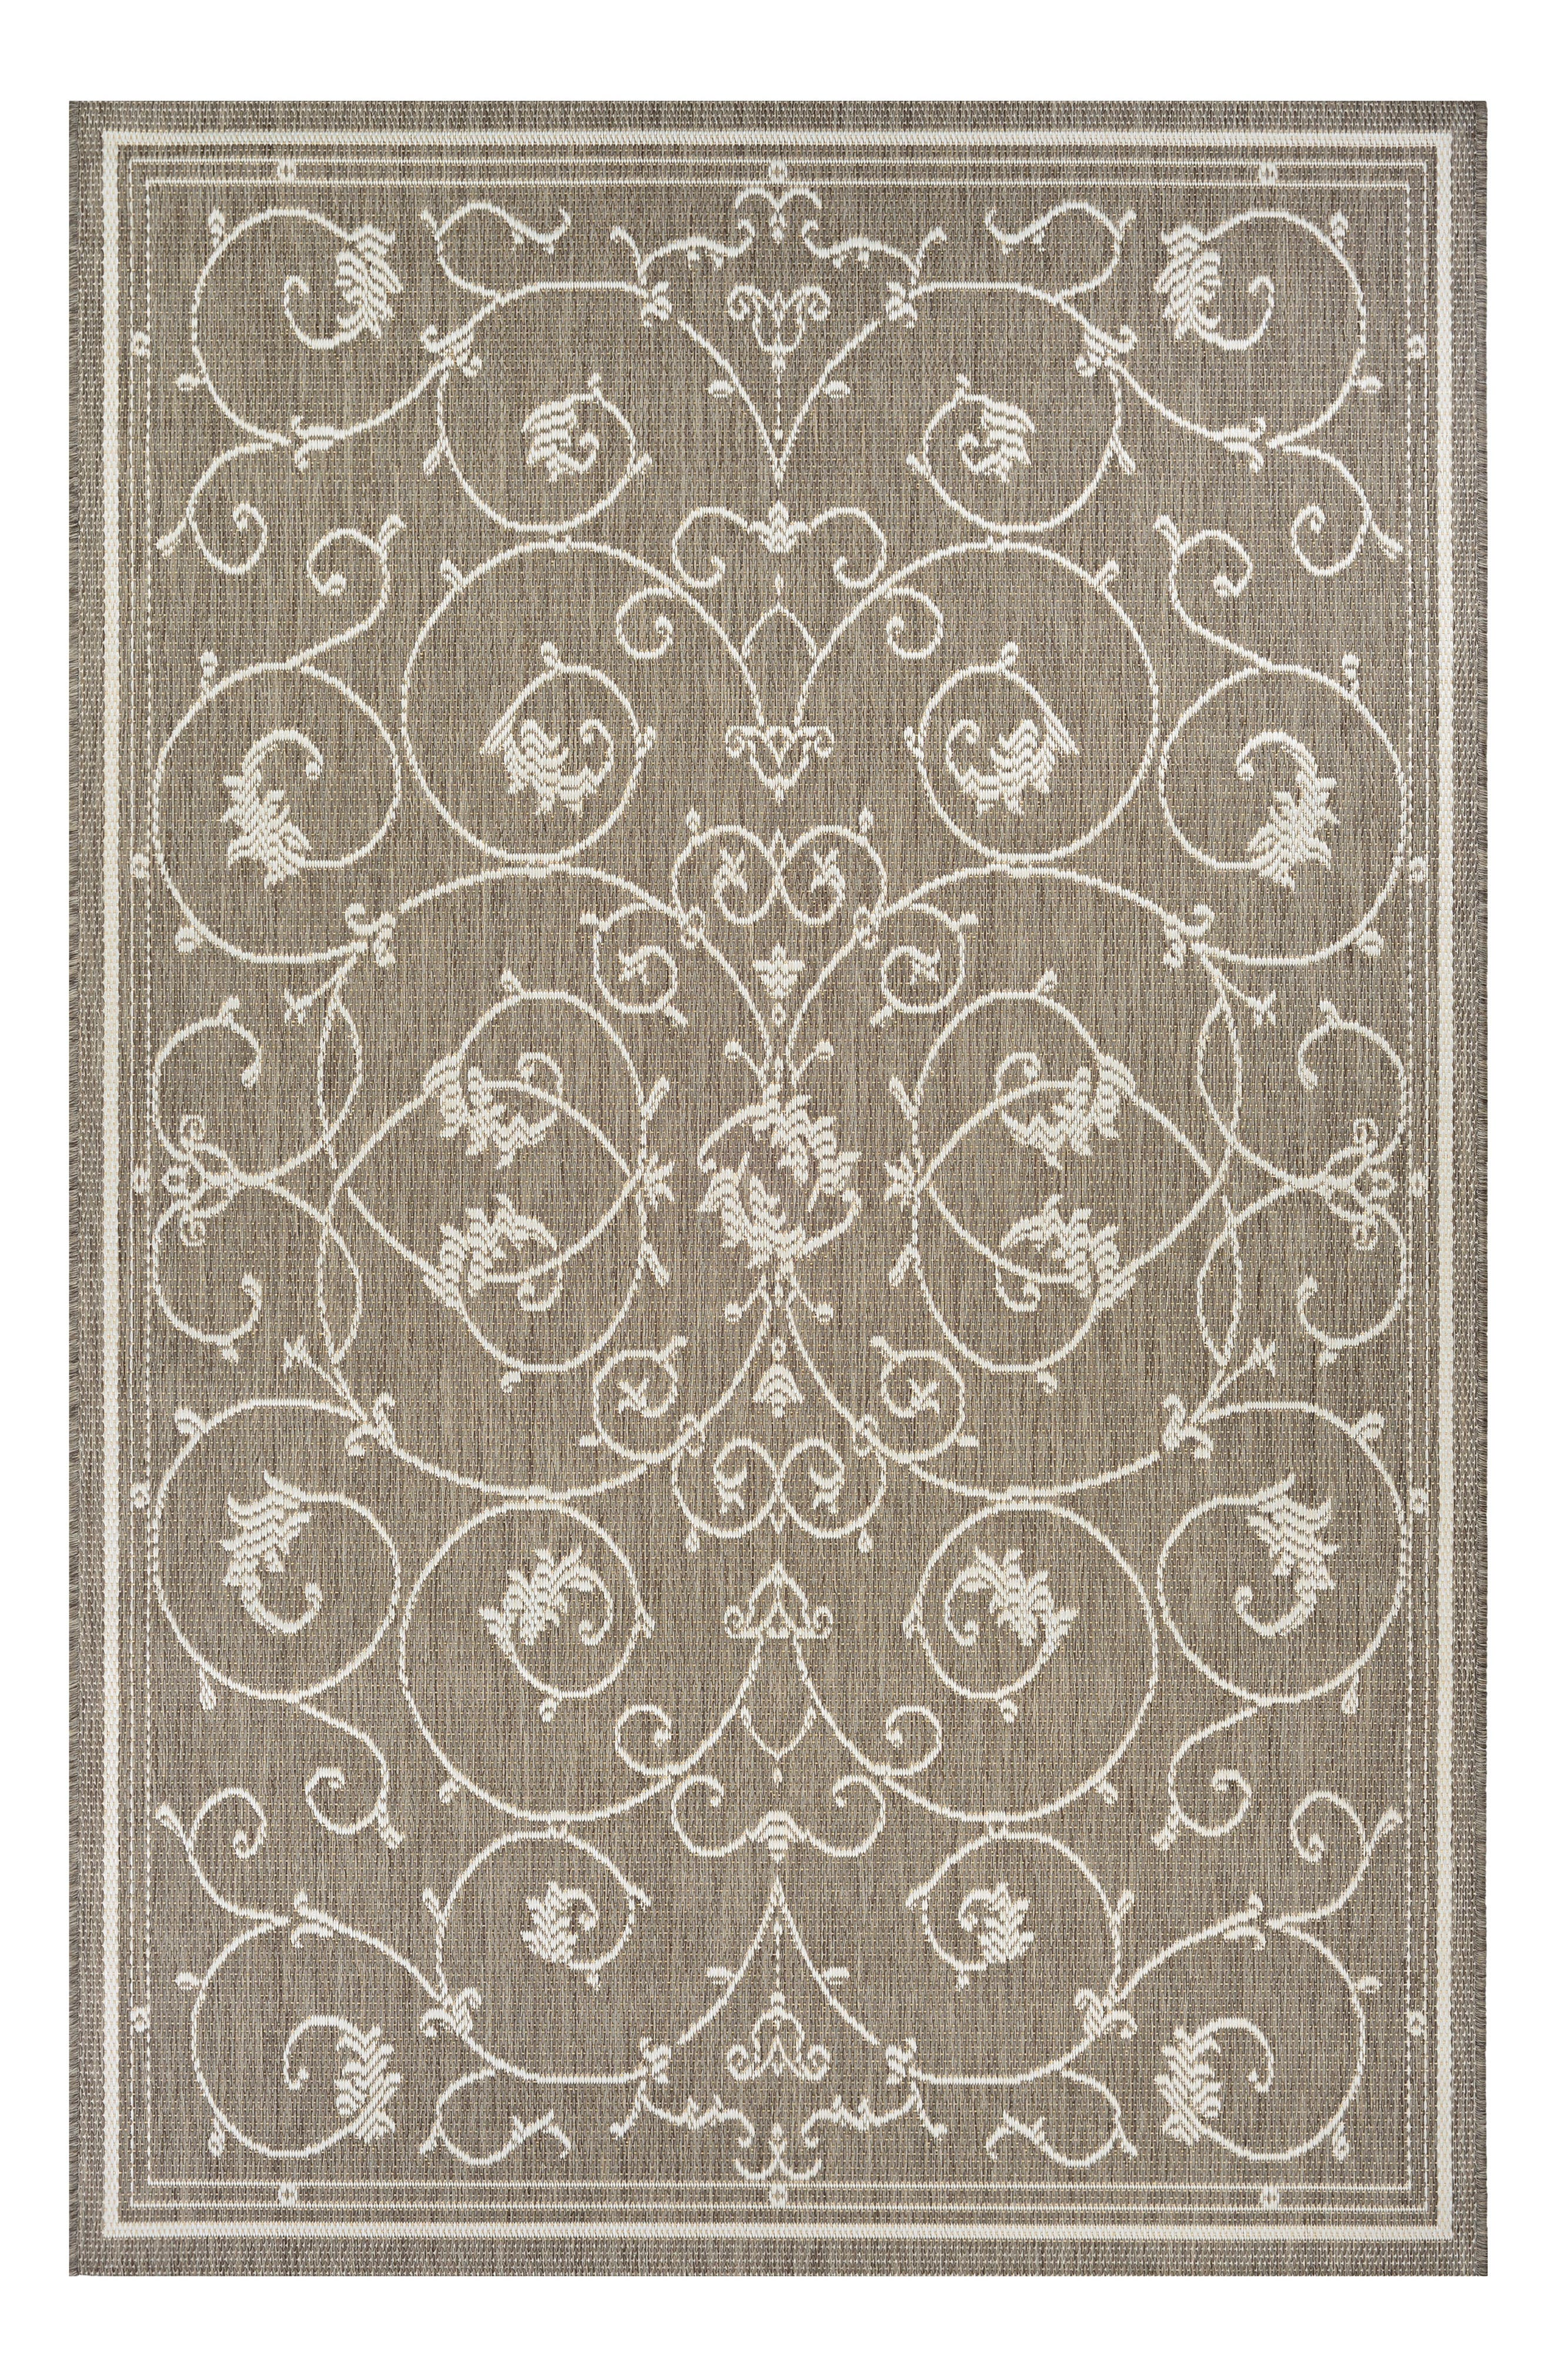 Veranda Indoor/Outdoor Rug,                             Main thumbnail 1, color,                             Champagne/ Taupe